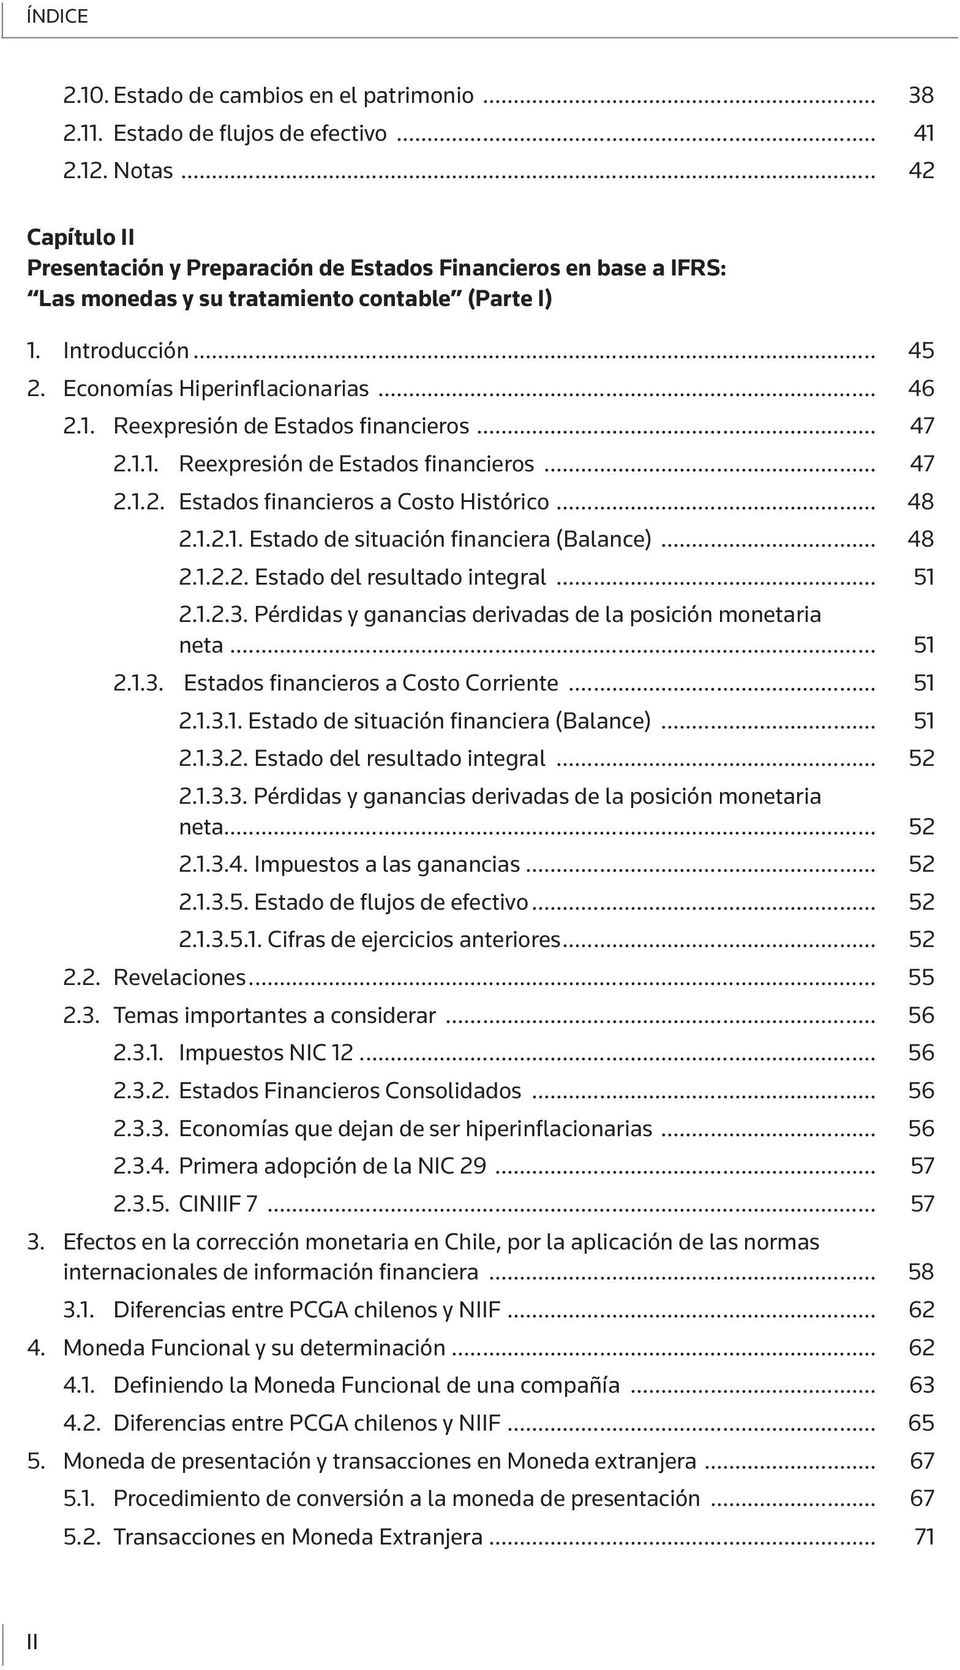 .. 47 2.1.1. Reexpresión de Estados financieros... 47 2.1.2. Estados financieros a Costo Histórico... 48 2.1.2.1. Estado de situación financiera (Balance)... 48 2.1.2.2. Estado del resultado integral.